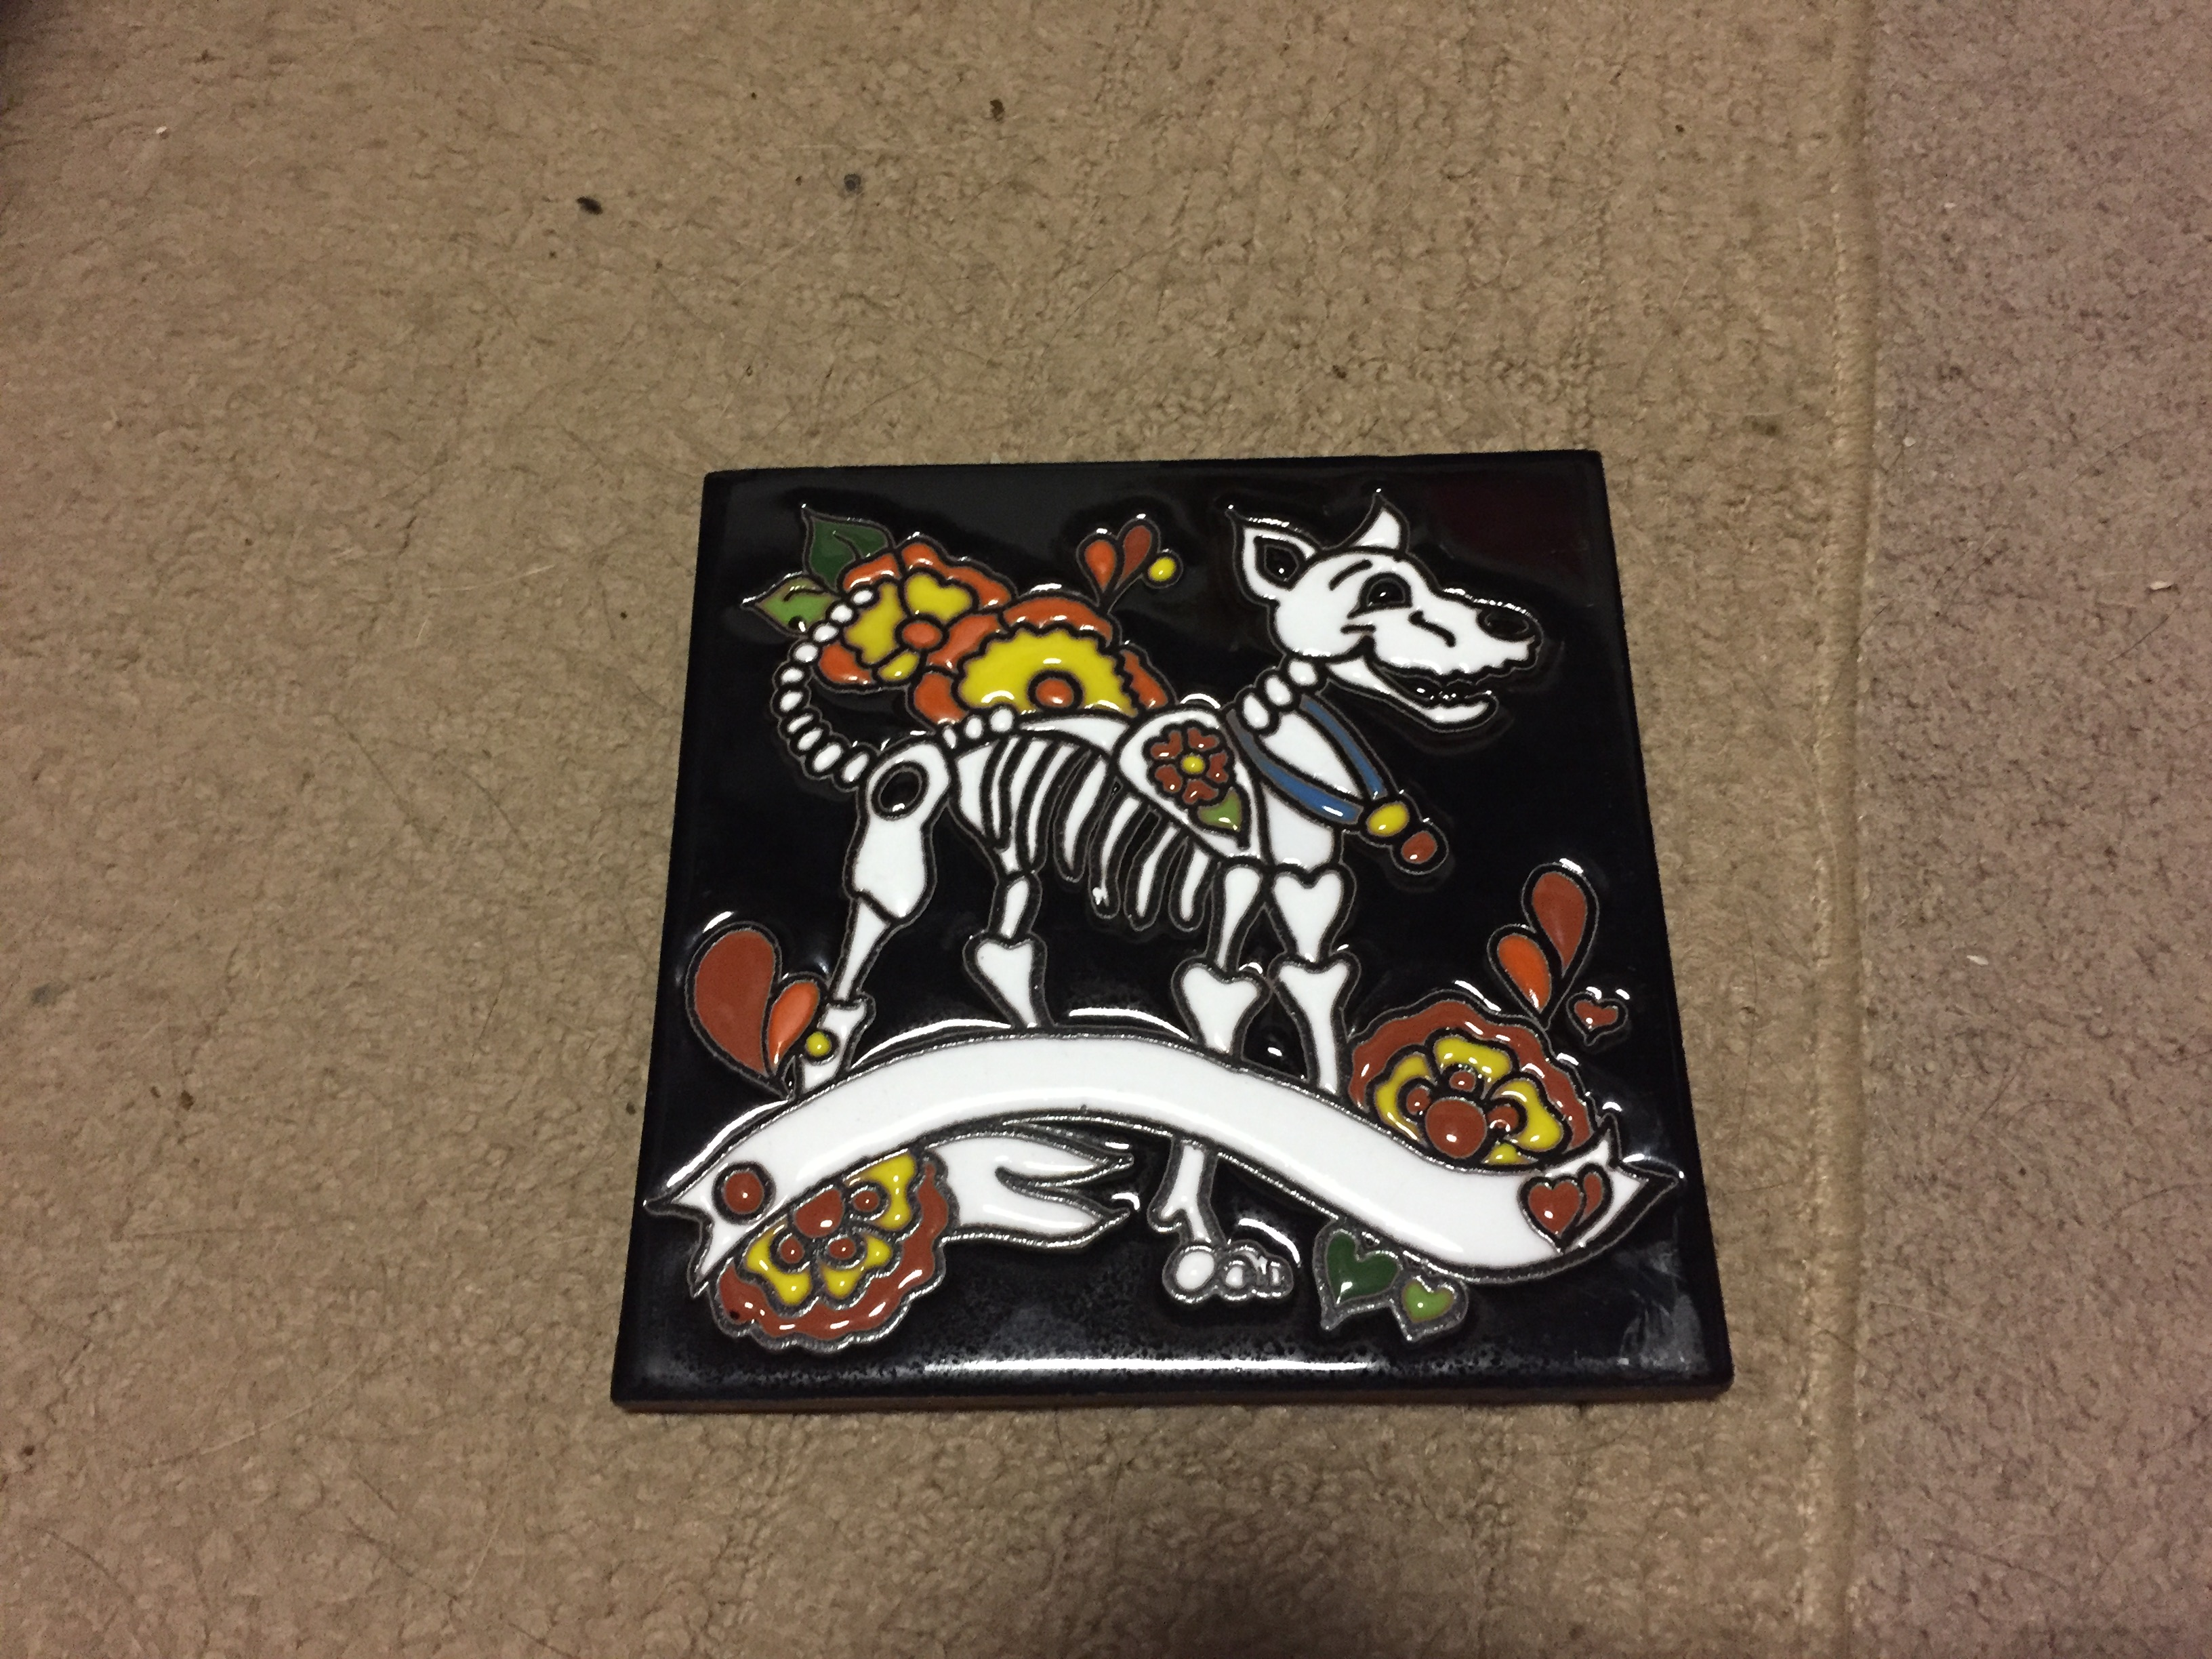 16 the mysteries of misty gypsyjudge then i bought a day of the dead ceramic tile its a very happy dead dog i bought it because it makes me laugh dailygadgetfo Images